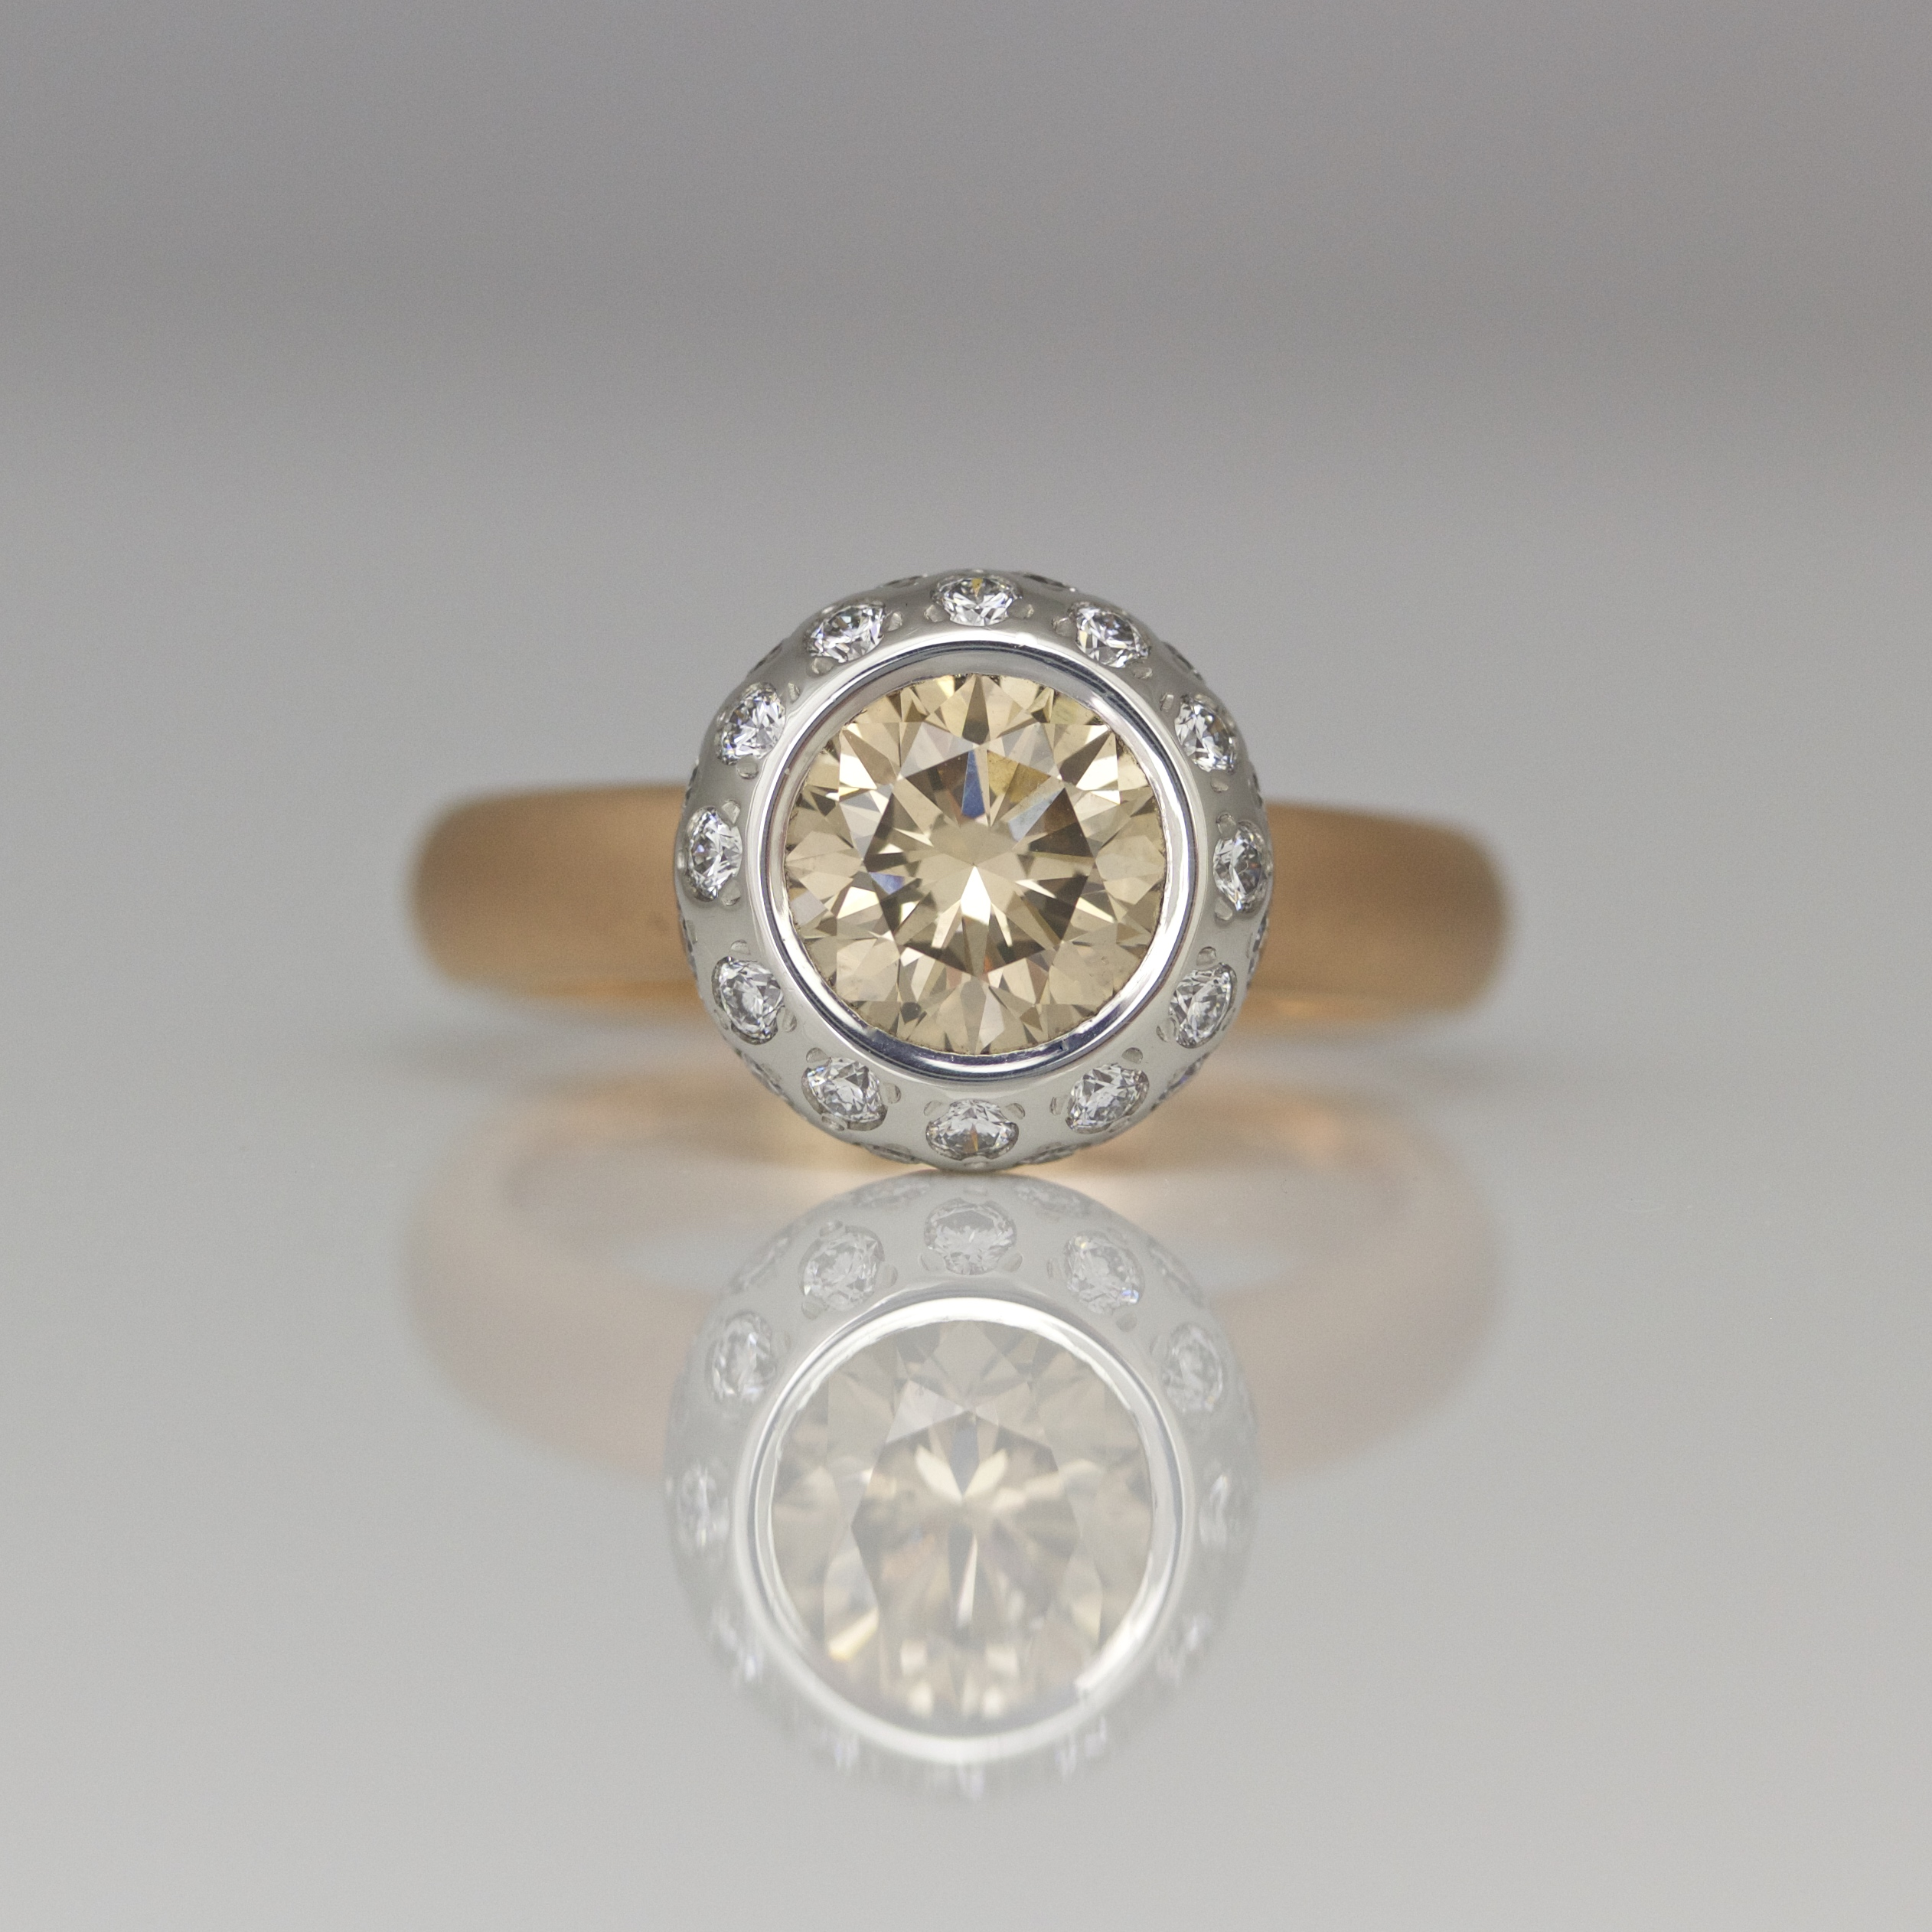 grey diamond engagement artemer ring champagne products rings gold in rose